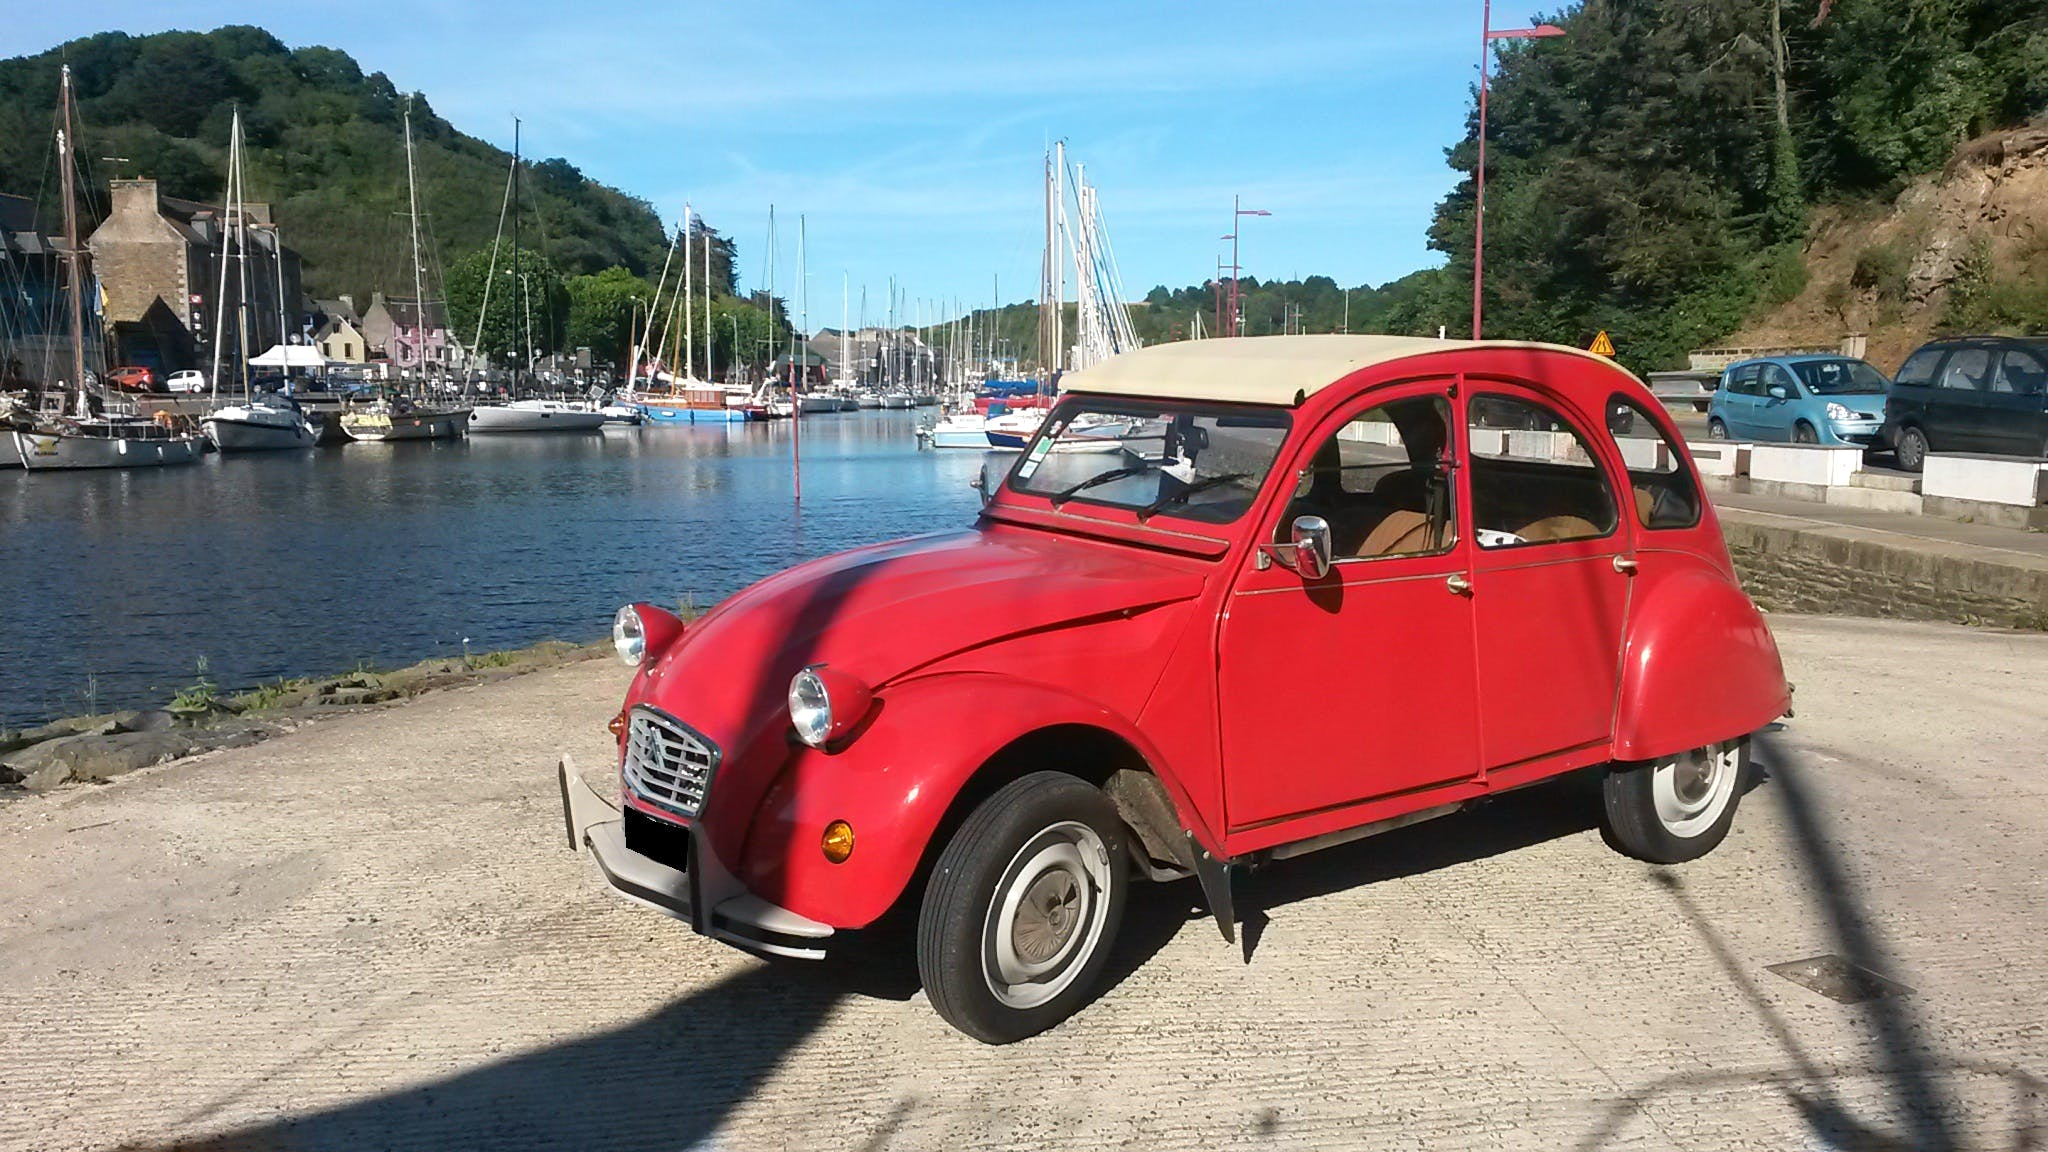 location citroen 2cv 1986  u00e0 saint brieuc  1 place fran u00e7ois mitterrand